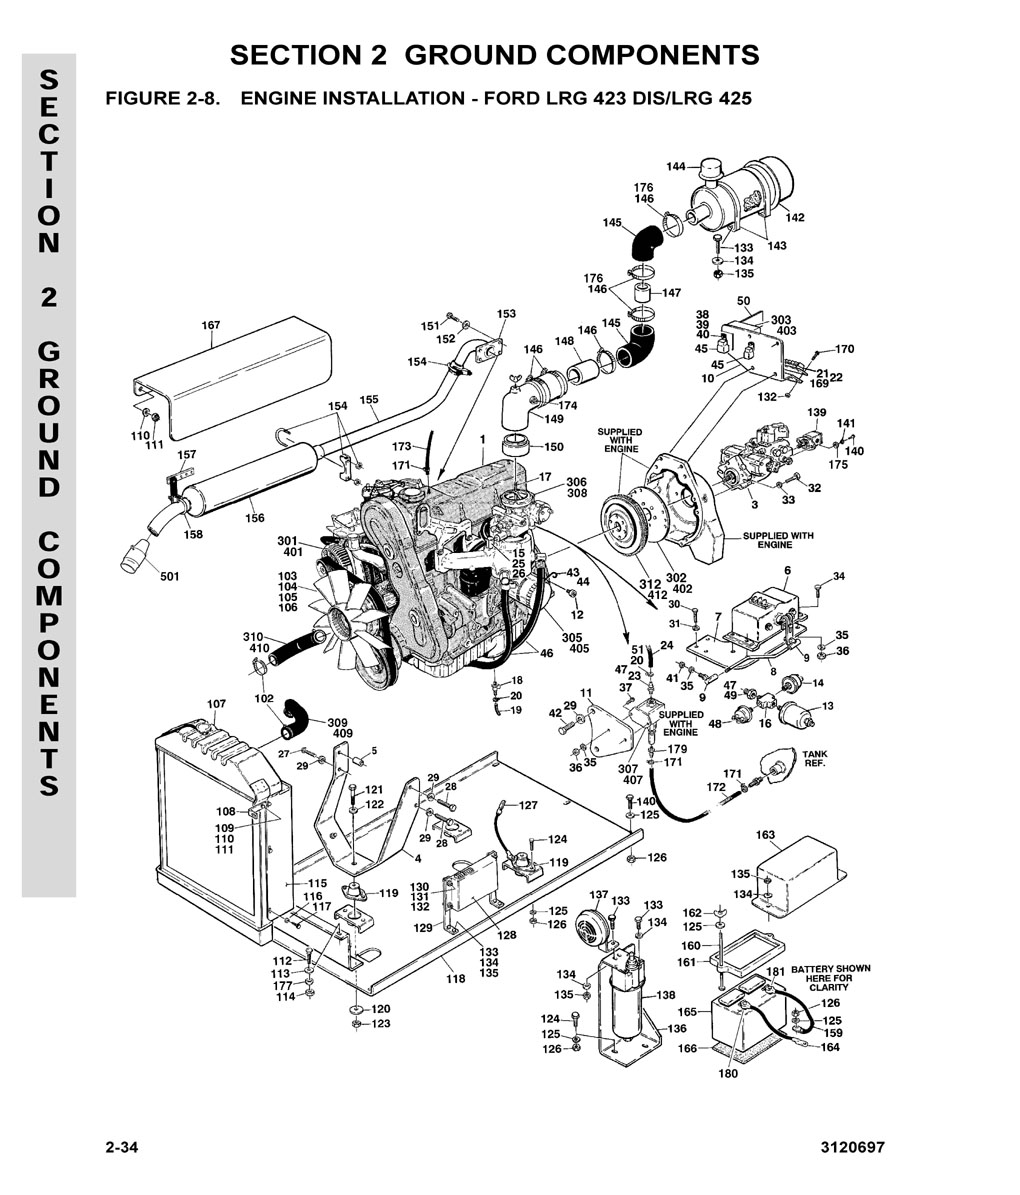 ford tow package wiring diagram  ford  auto wiring diagram